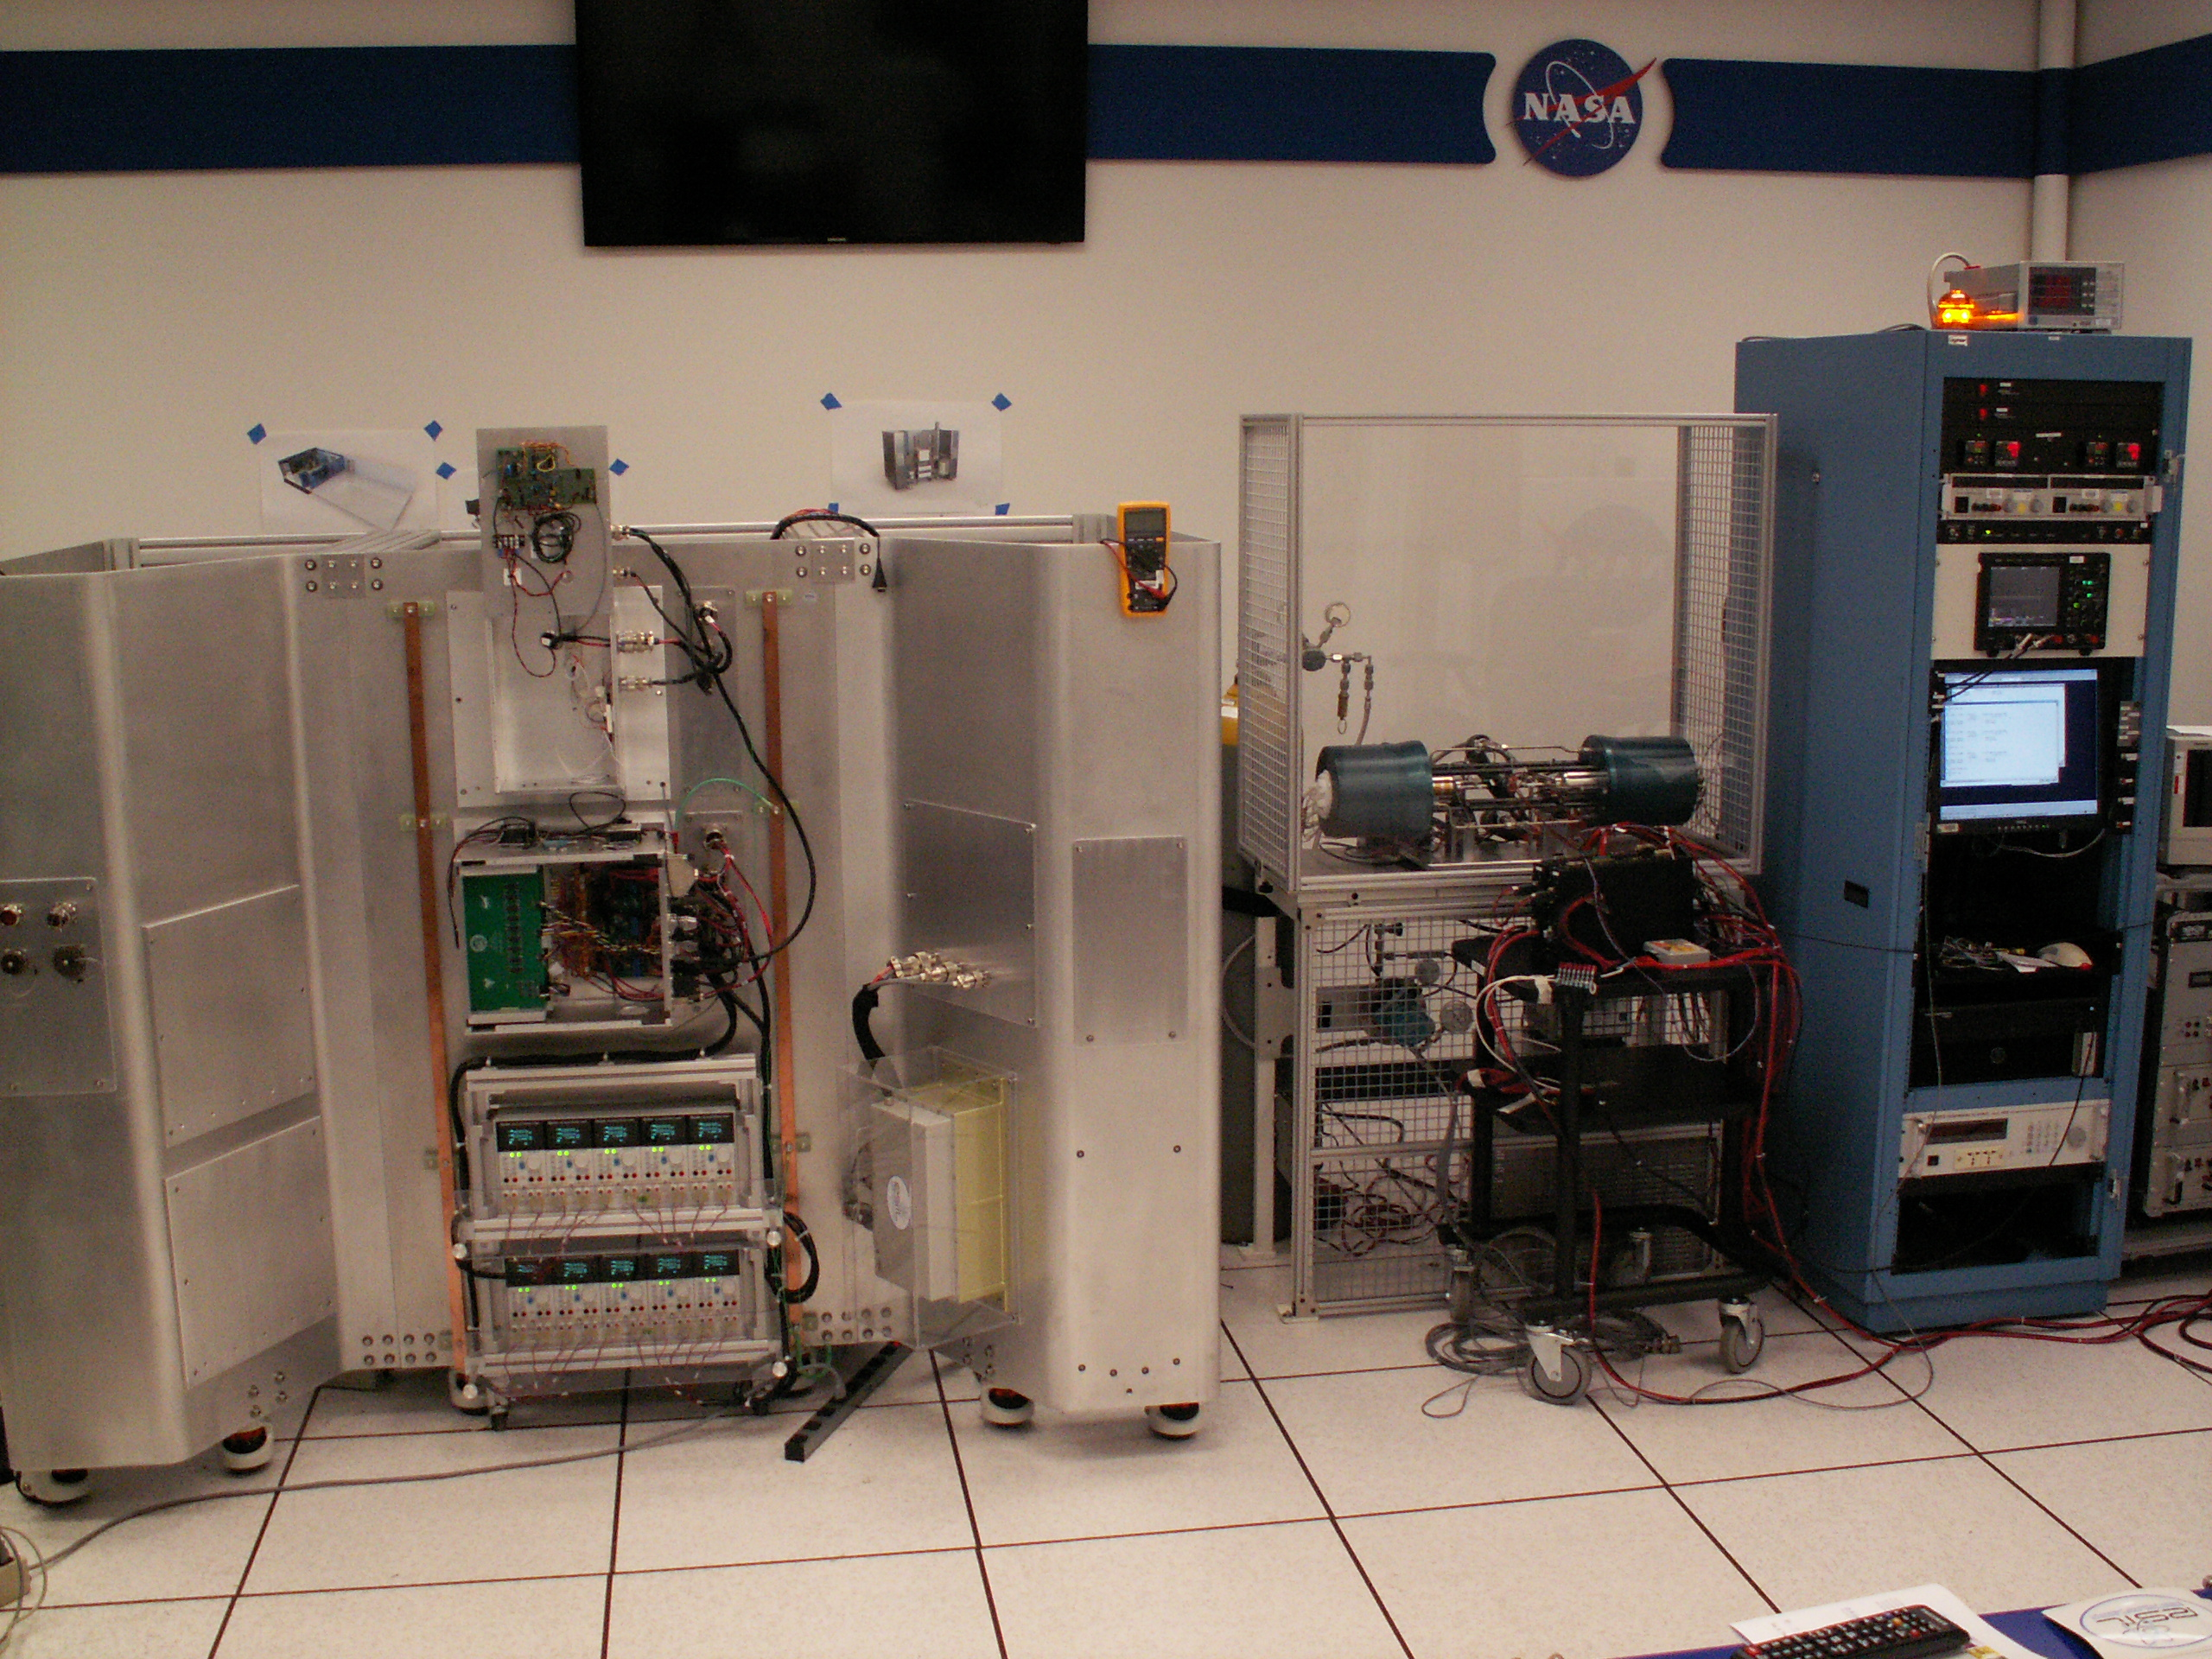 Radioisotope Power System (RPS), Systems Integration